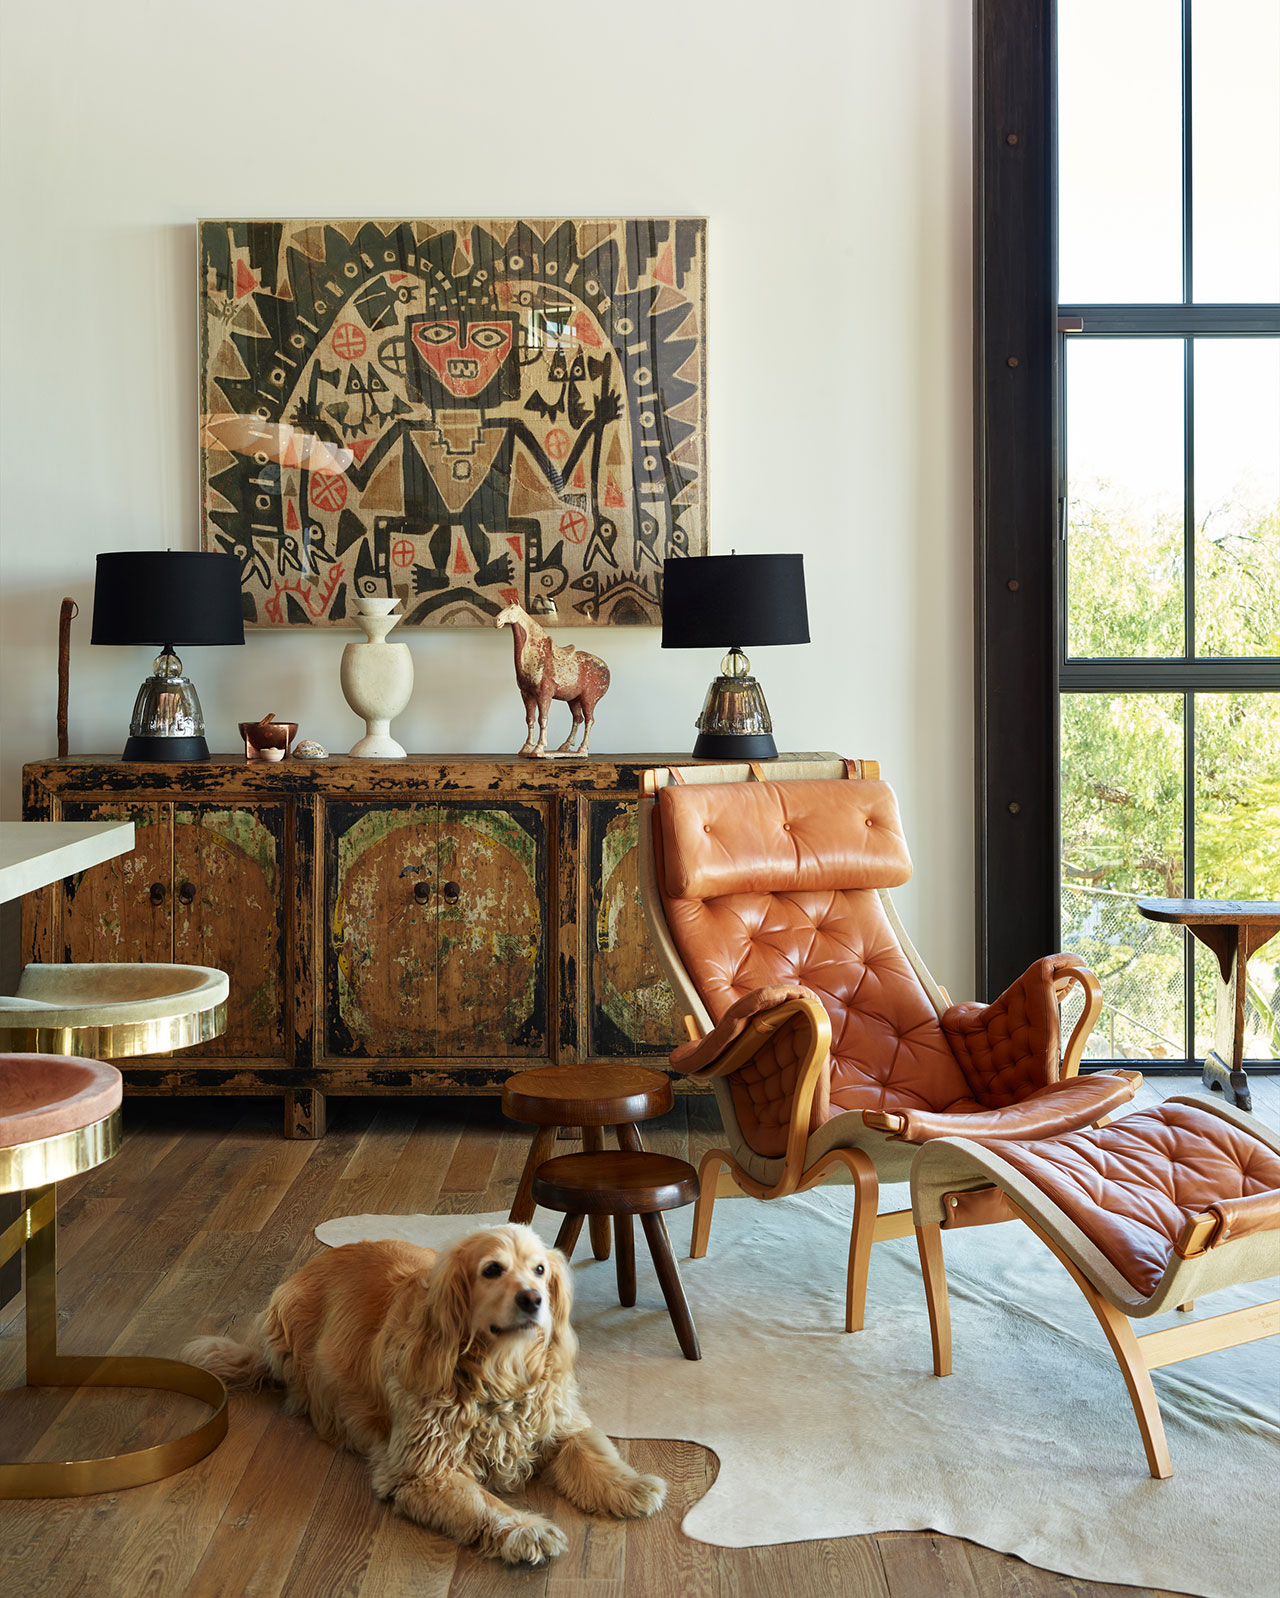 """HollywoodHillsHouse by Mutuus Studio in Los Angeles, California.Photography by Kevin Scott. Featured:Bruno Mathsson """"Pernilla"""" Lounge chair, vintage Warren Bacon Saddle stools, and Casper, the owners' dog."""